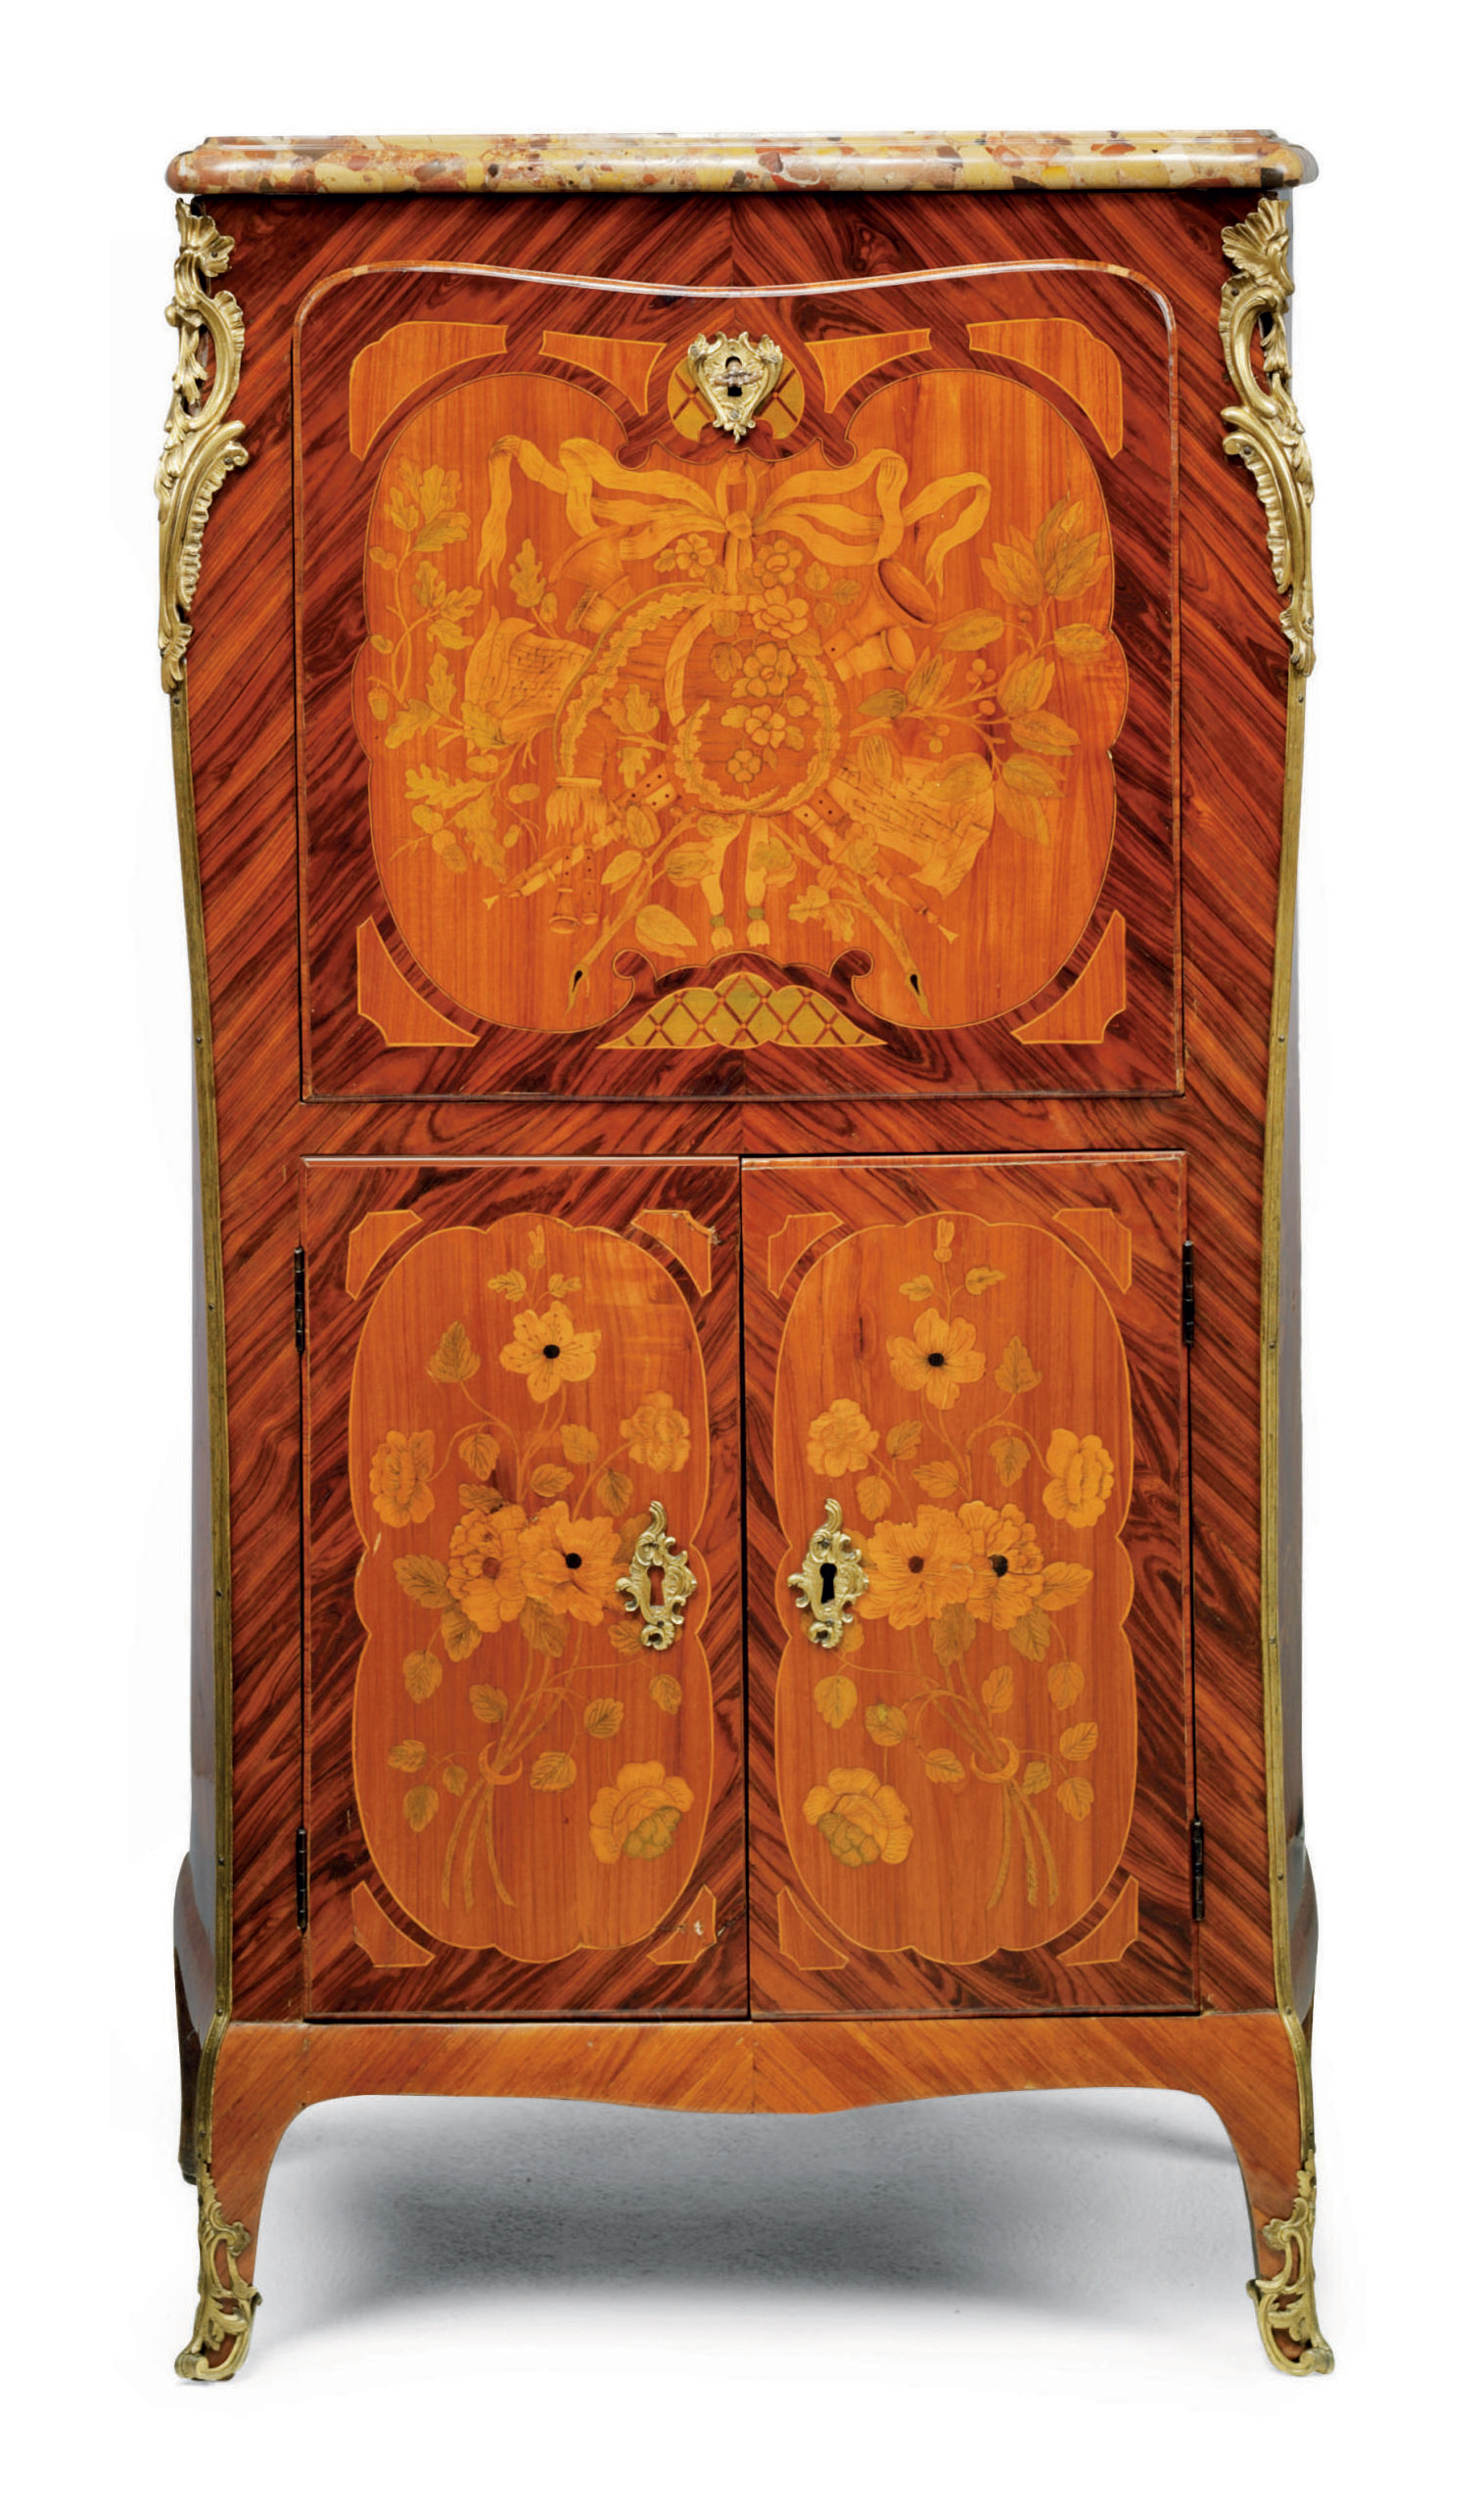 A LOUIS XV KINGWOOD, TULIPWOOD AND FRUITWOOD MARQUETRY SECRETAIRE A ABATTANT